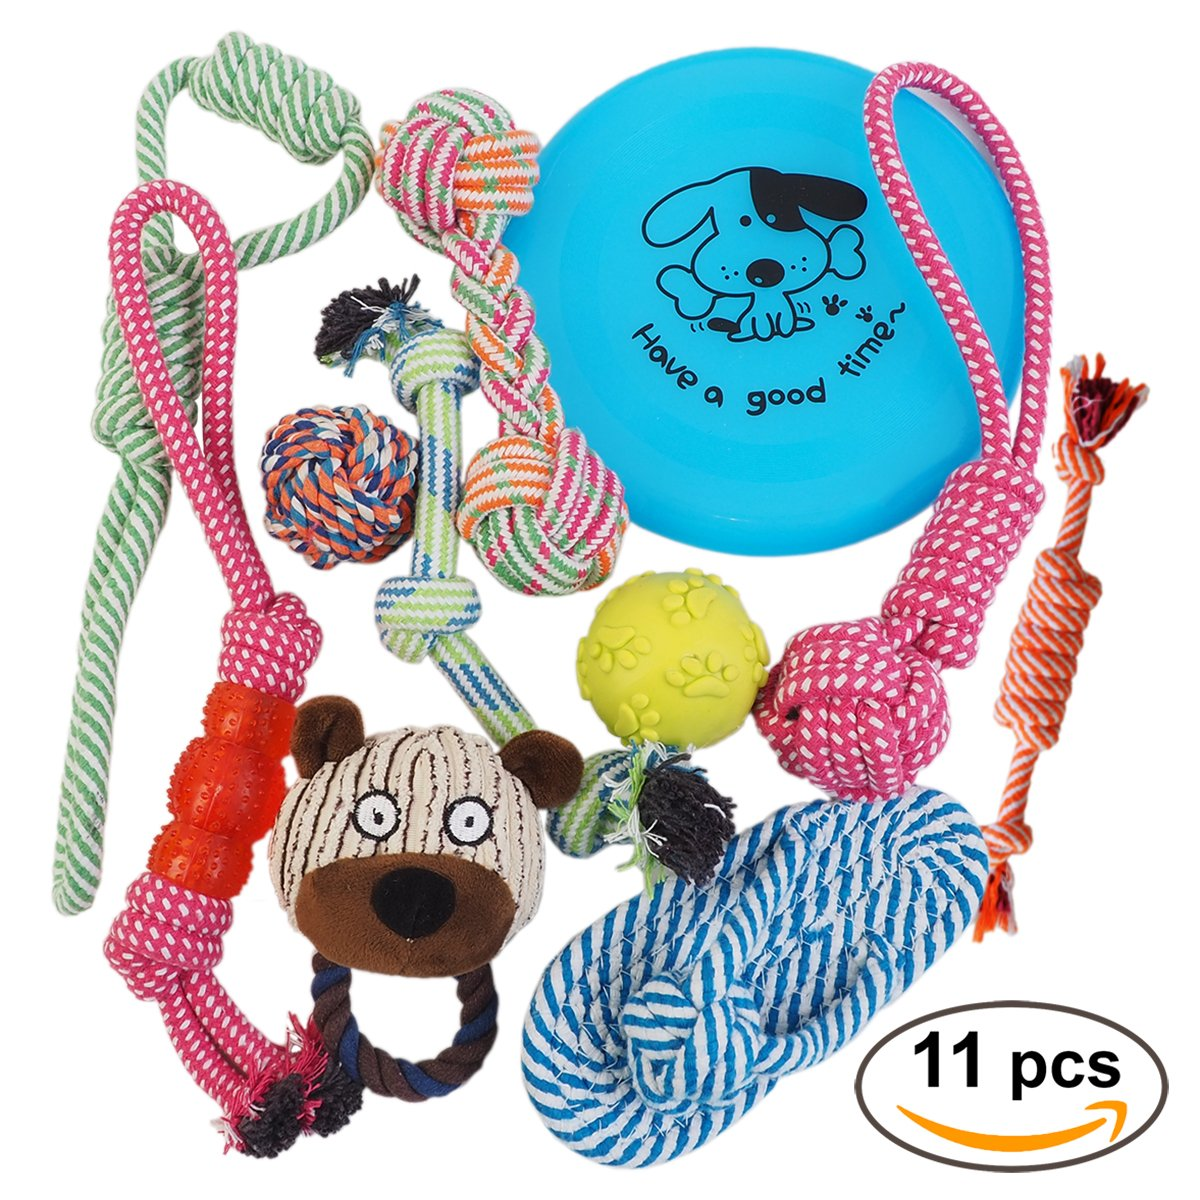 Cheap Teething Puppy Toys Find Teething Puppy Toys Deals On Line At